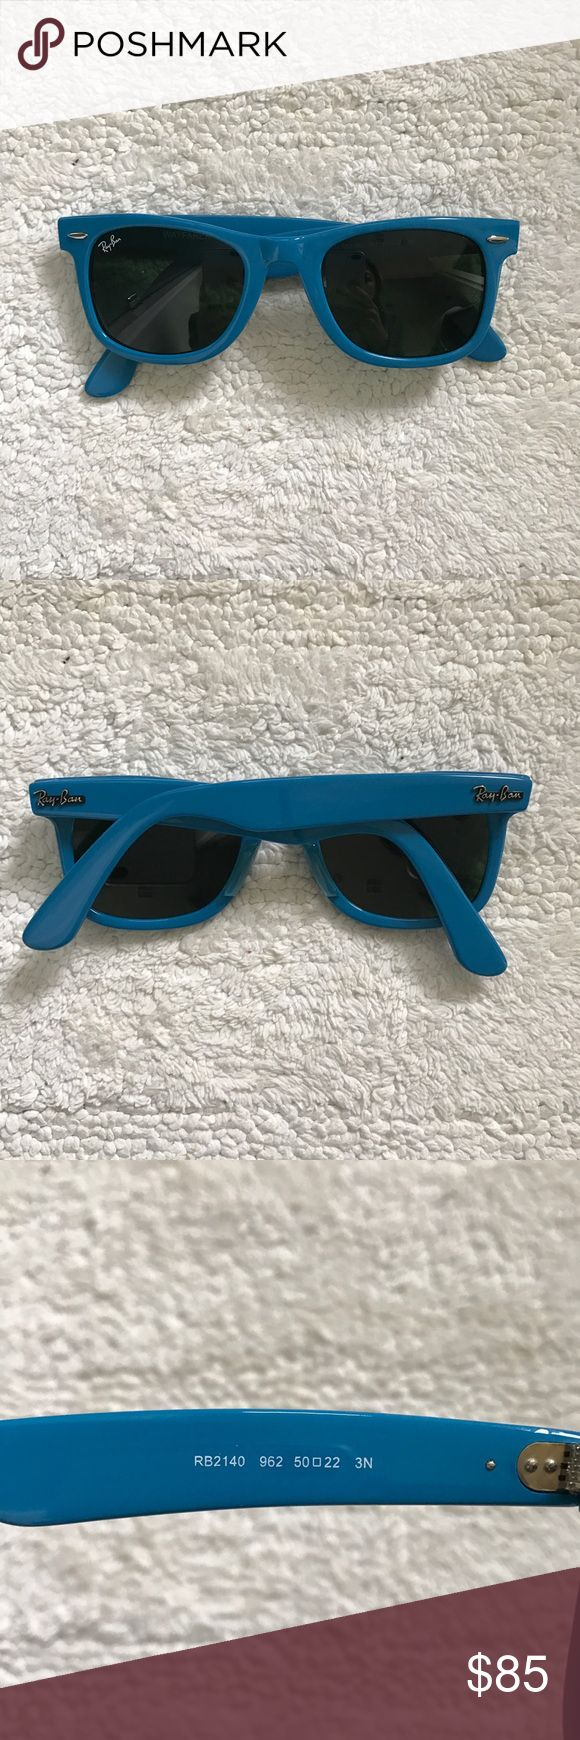 Ray Ban wayfarer sunglasses Original authentic Ray Ban RB2140 wayfarer sunglasses in color #962. These are brand new with the tags, cleaning cloth and case. Hand made in Italy. Size 50-22 Ray-Ban Accessories Sunglasses